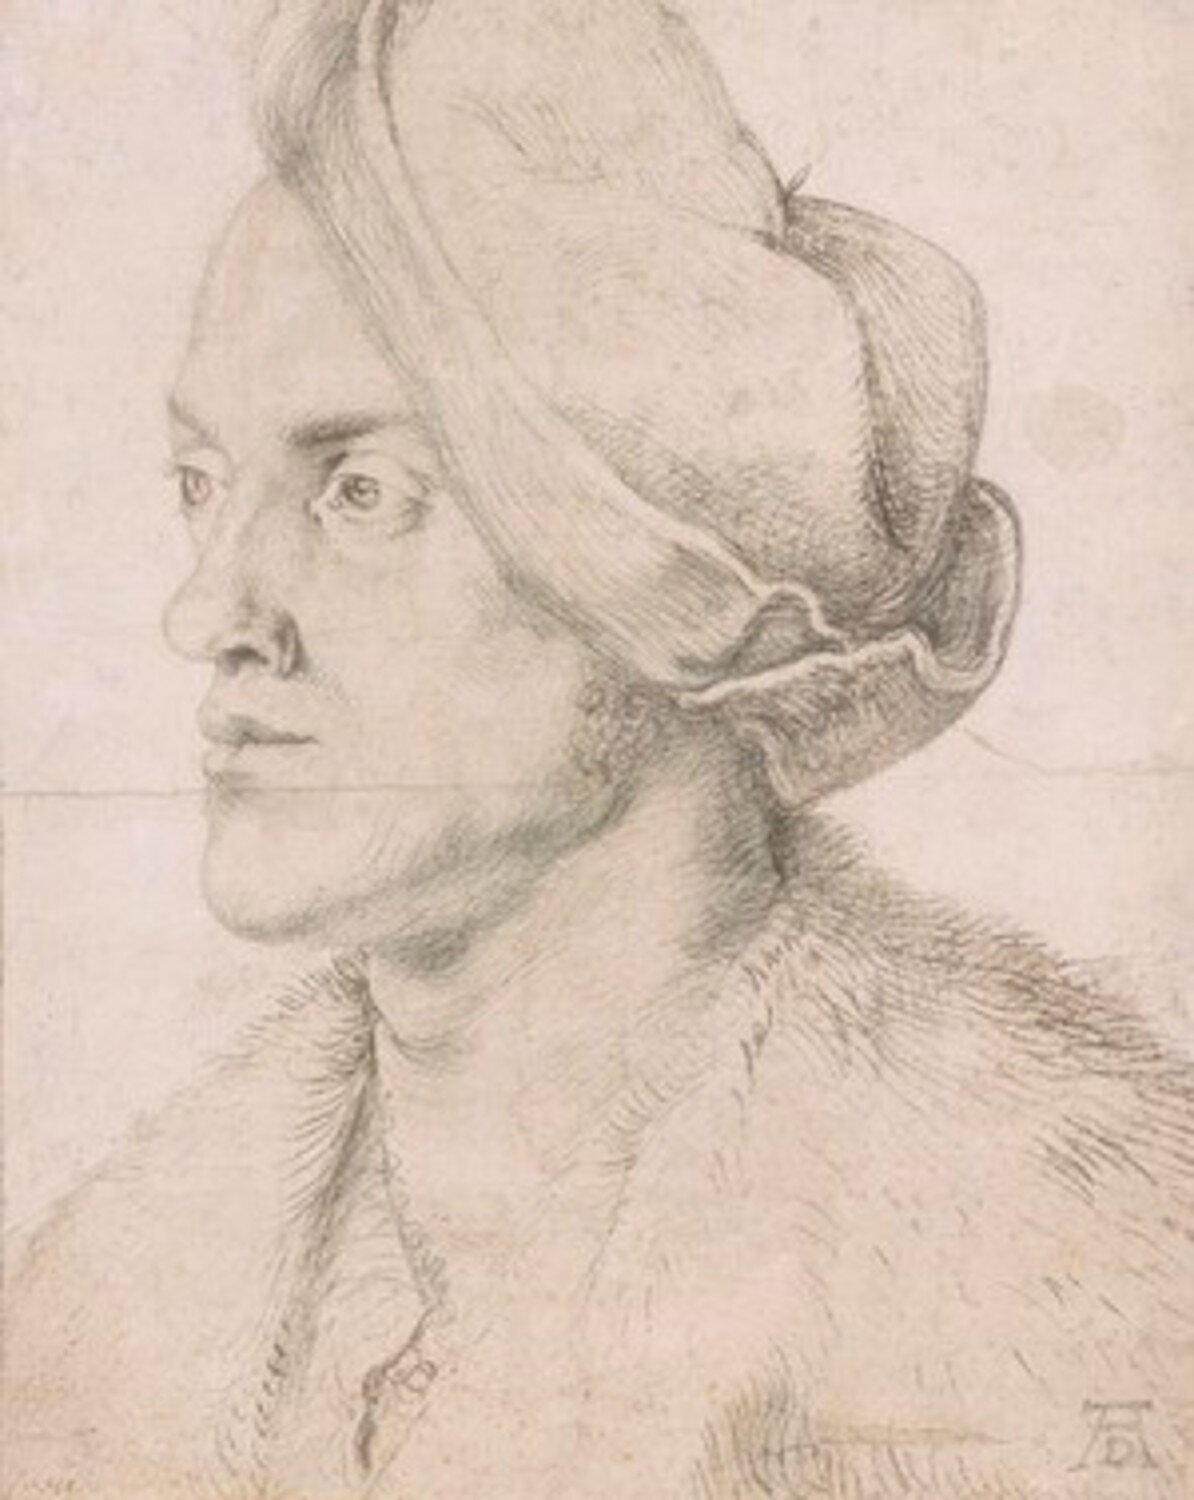 The Morgan explores the unique role of drawing in portraiture in a new exhibition